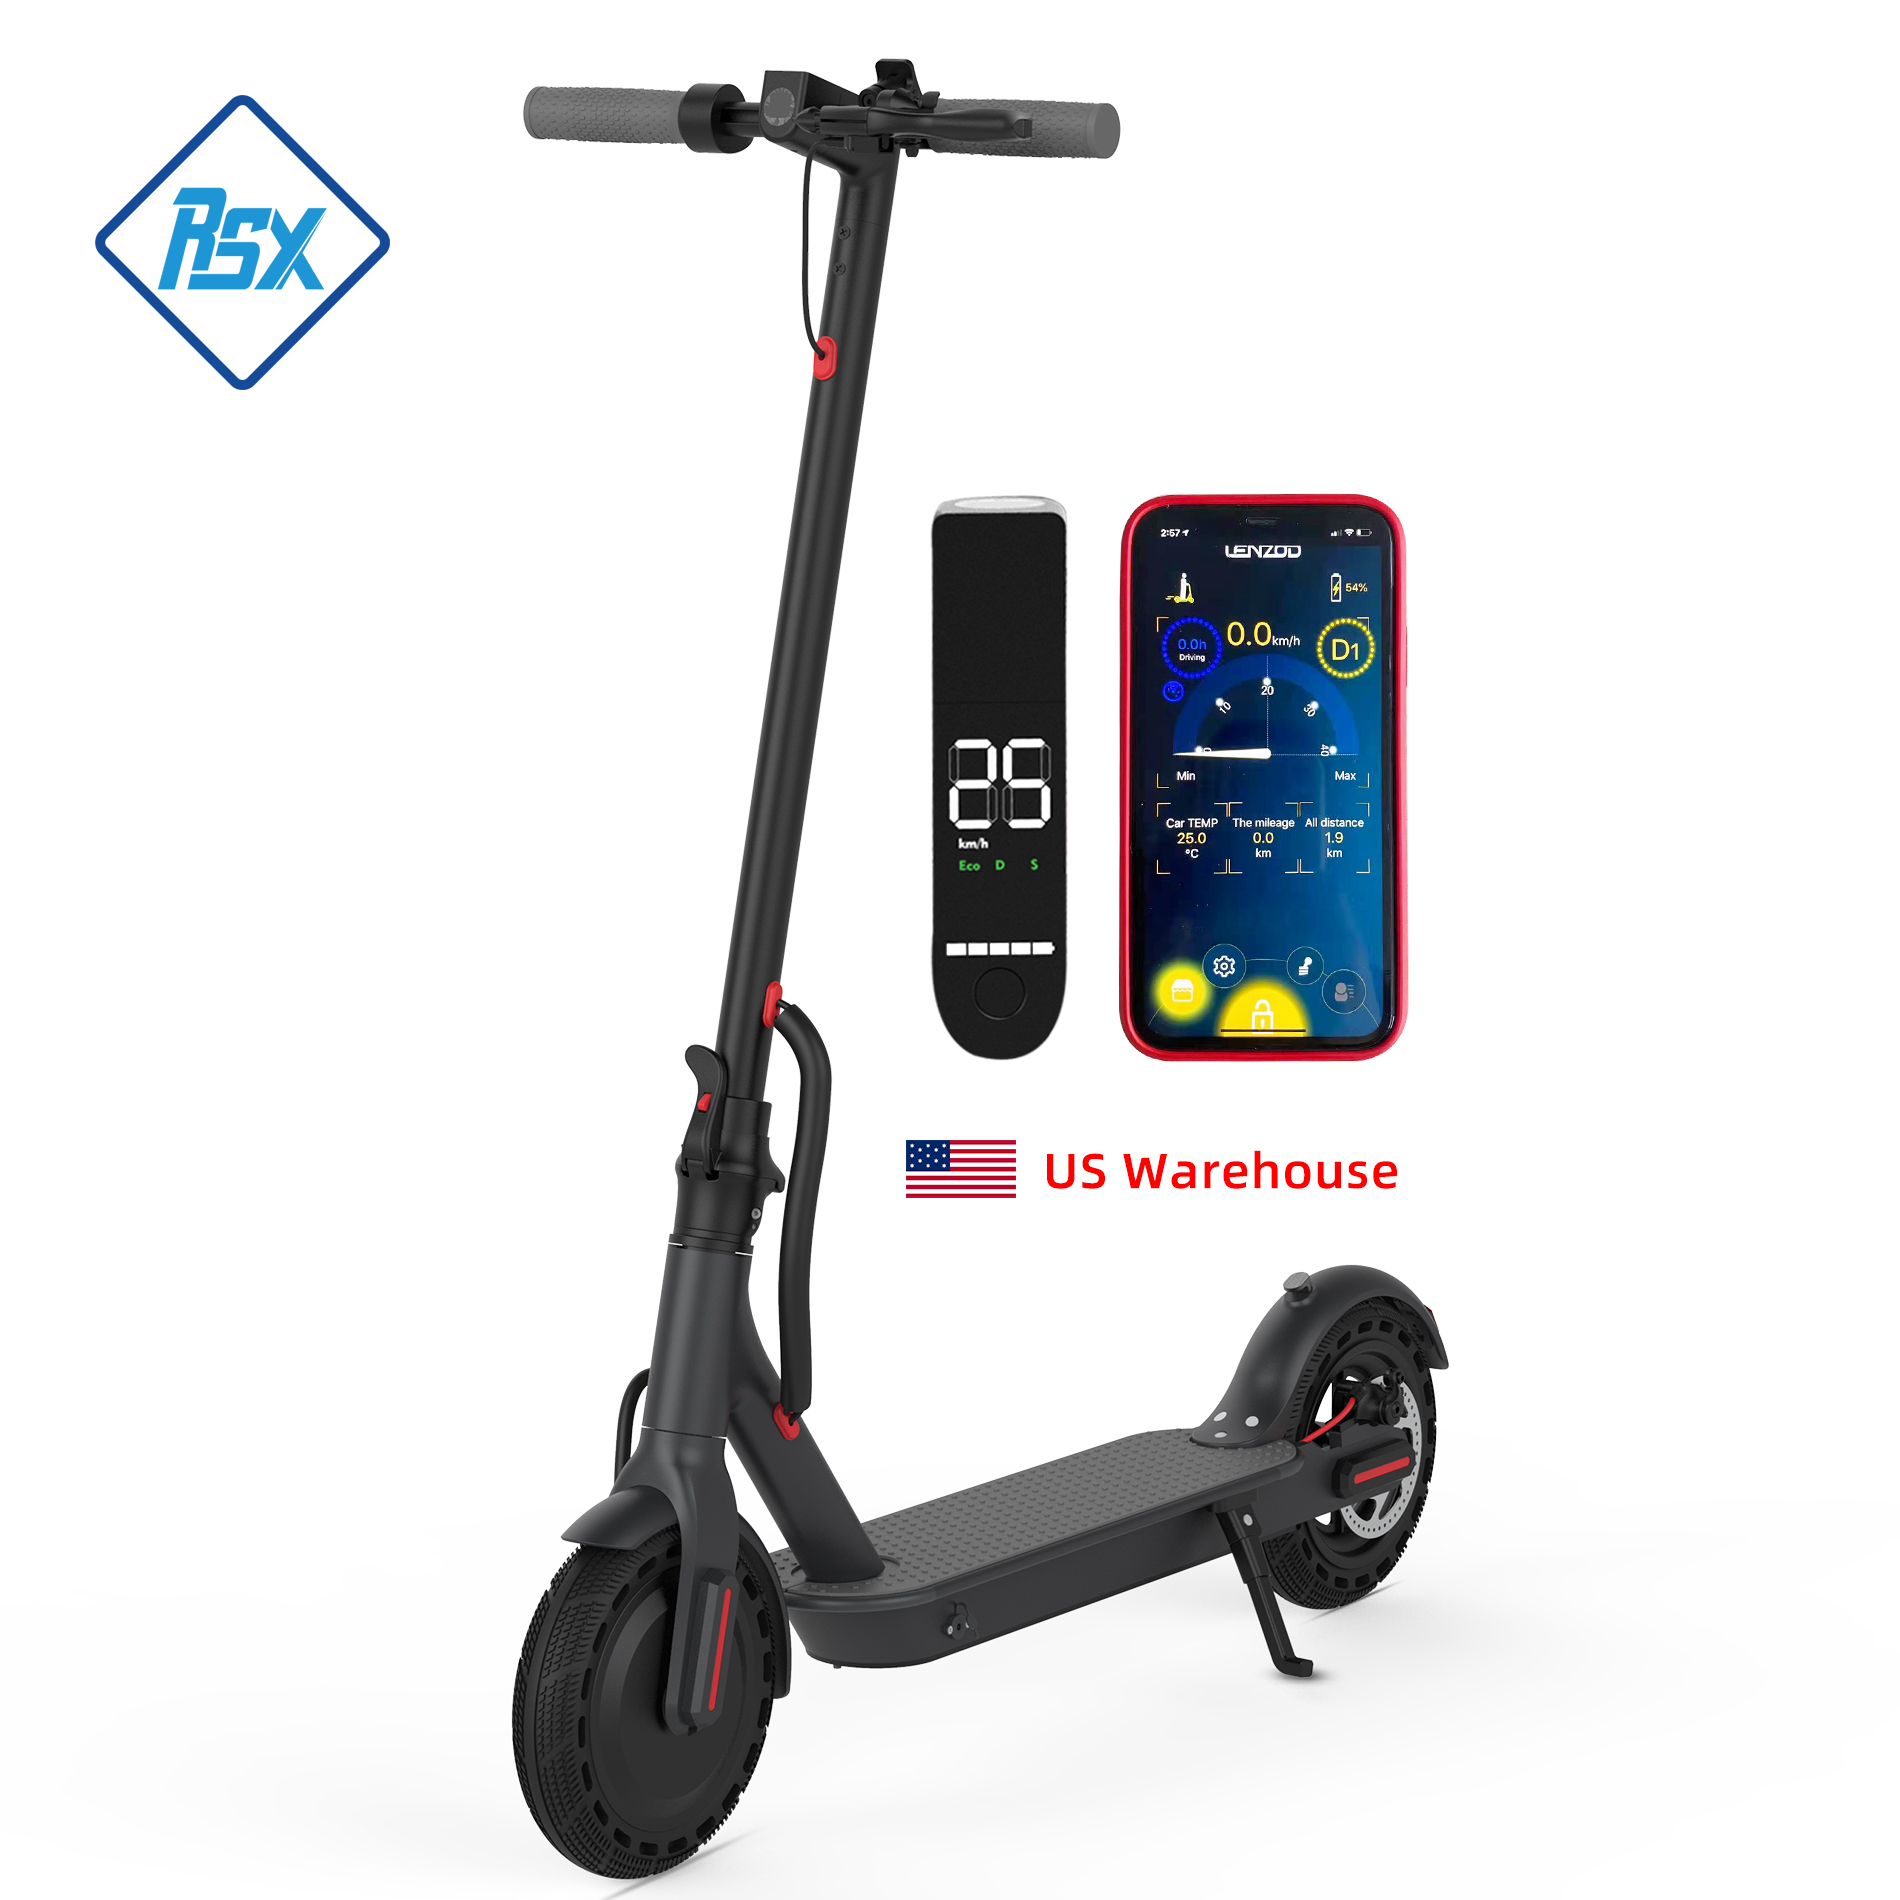 DDP Free Duty American USA US Warehouse Free Drop Shipping 36V 10Ah 350w Skateboard Foldable E scooter Adult Electric Scooter